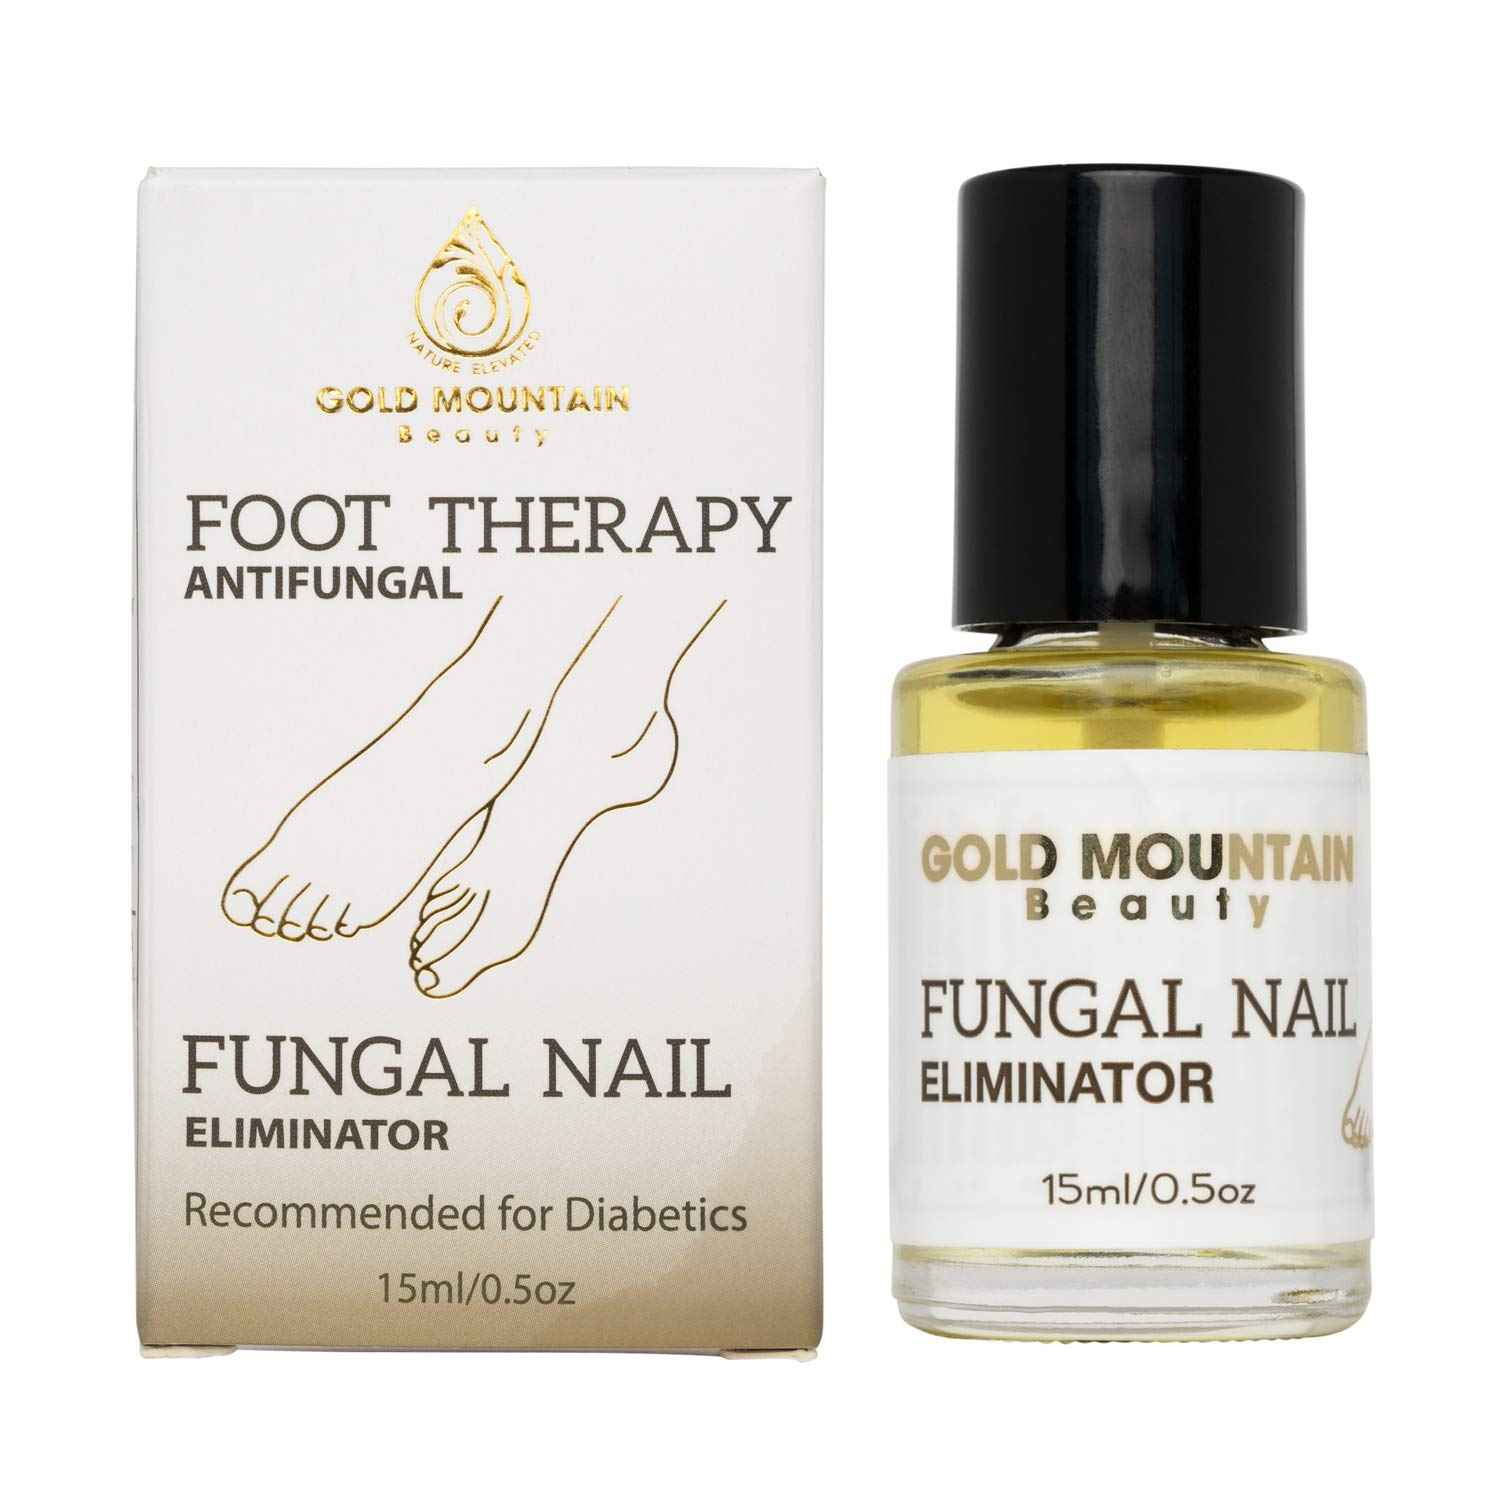 Gold Mountain Beauty Fungal Nail Eliminator with Tolnaftate and Puredia SeaBerry, Foot Therapy Antifungal Treatment for toenail Fungus formulated by a Physician, Brush On Oil, 0.5oz Bottle by Gold Mountain Beauty